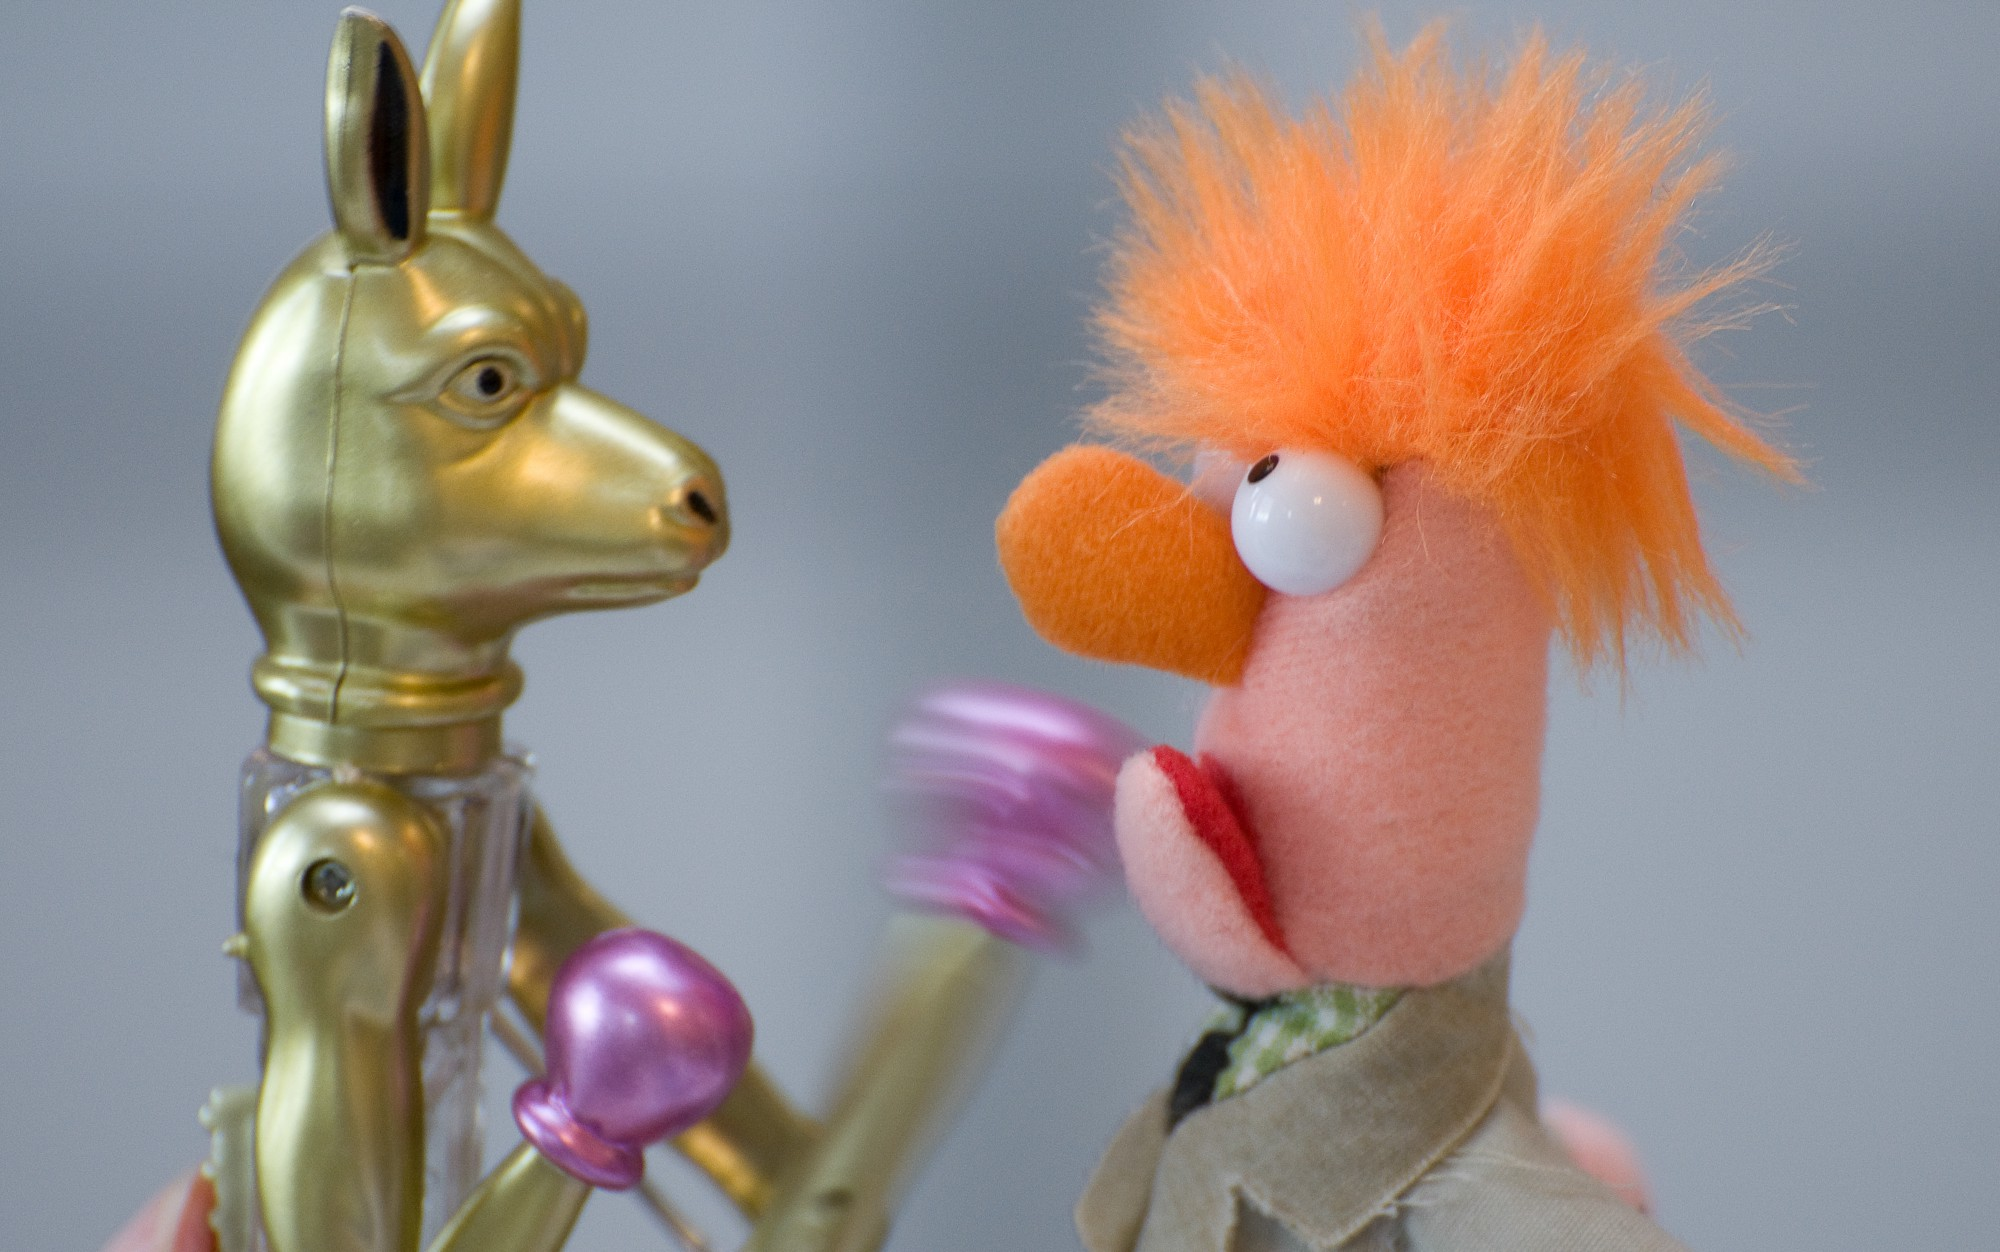 Toy kangaroo with boxing gloves fighting a muppet. Yes, really!